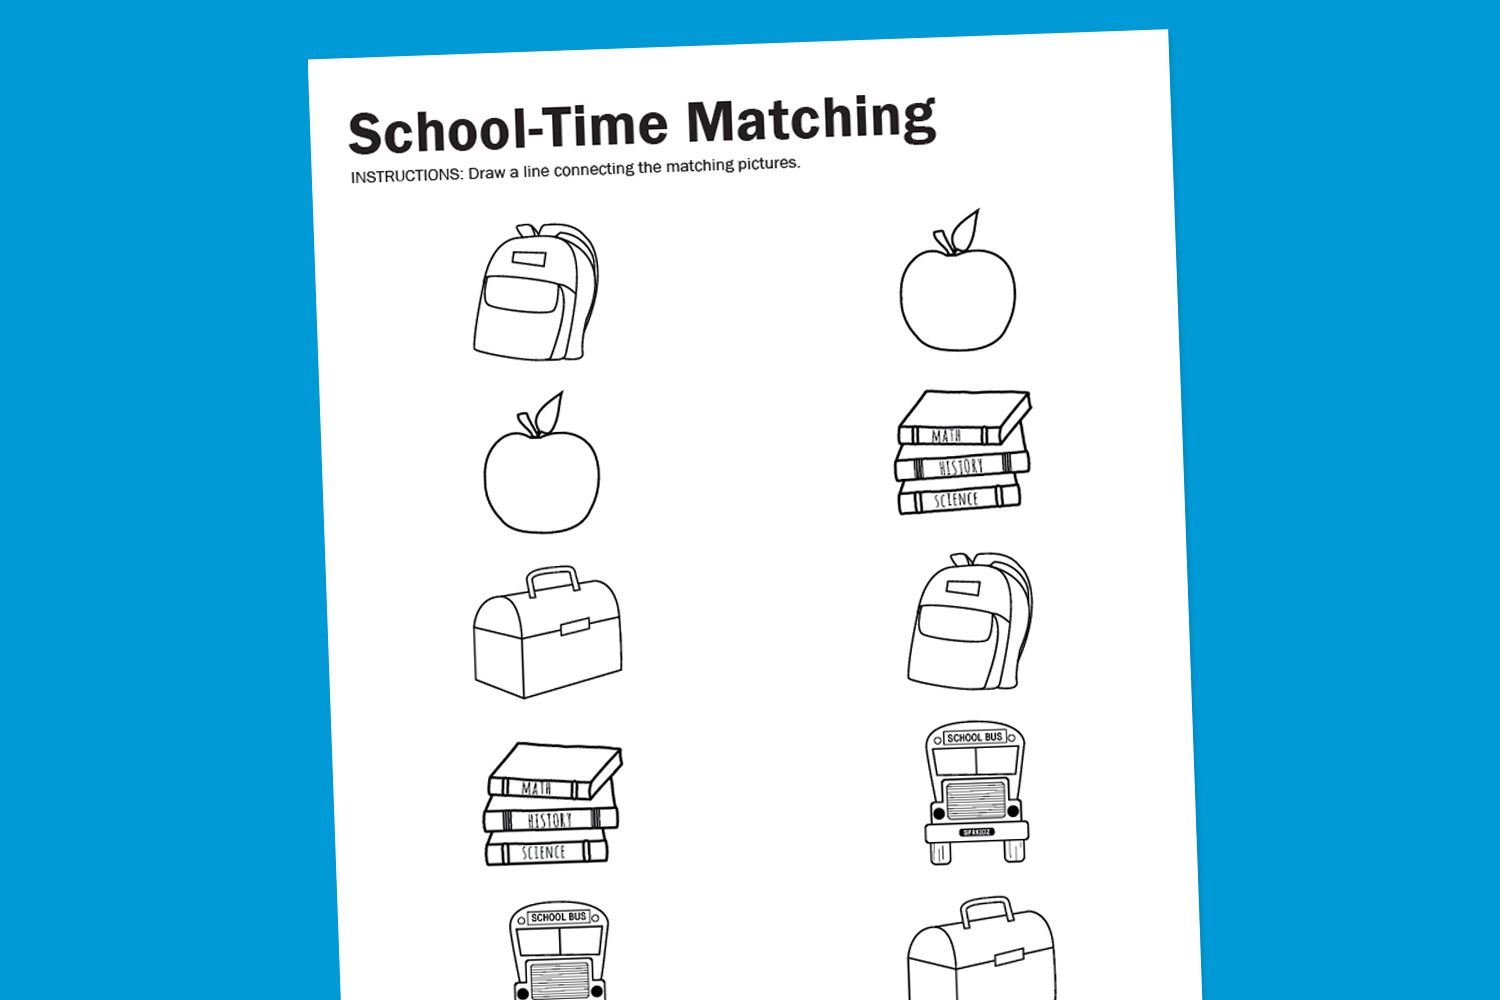 worksheet Kindergarten Back To School Worksheets pre k drawing worksheets at getdrawings com free for personal use 1500x1000 and coloring emotions children teaching